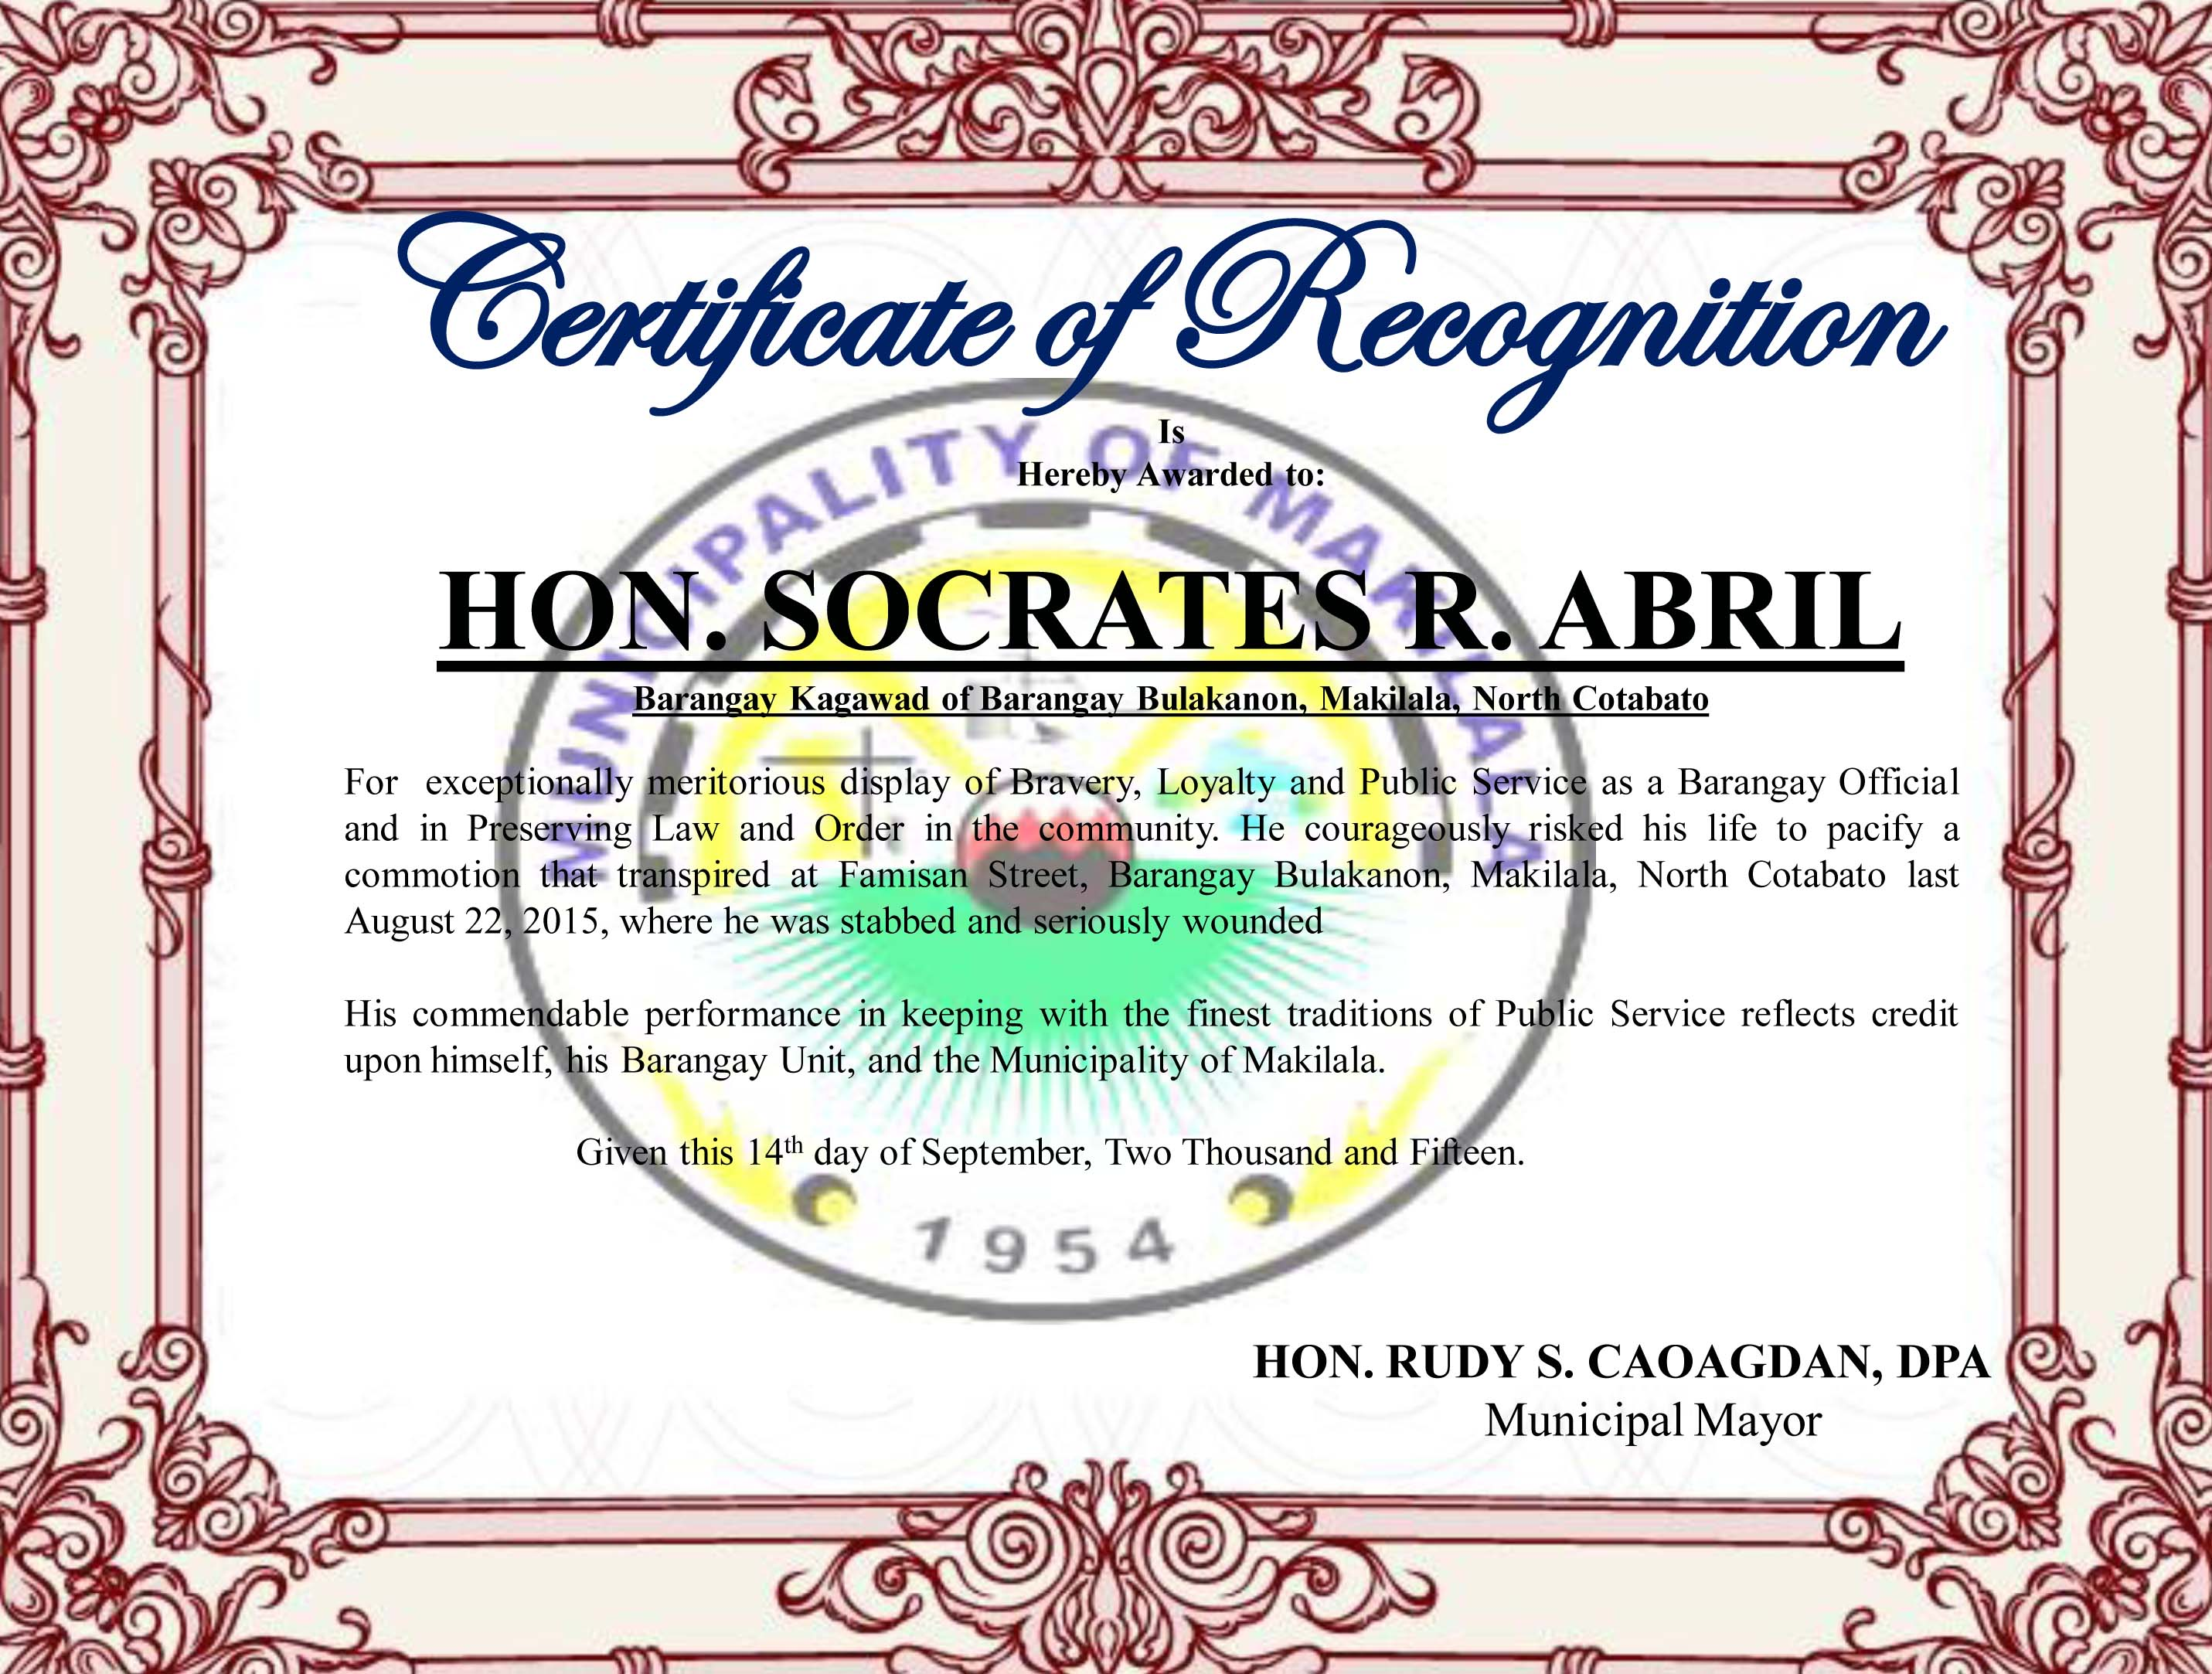 Barangay kagawad risks life to maintain peace and order commended mayor rudy caoagdan awarded a certificate of recognition to bulakanon barangay kagawad socrates abril for exceptionally and meritorious display of bravery yadclub Gallery